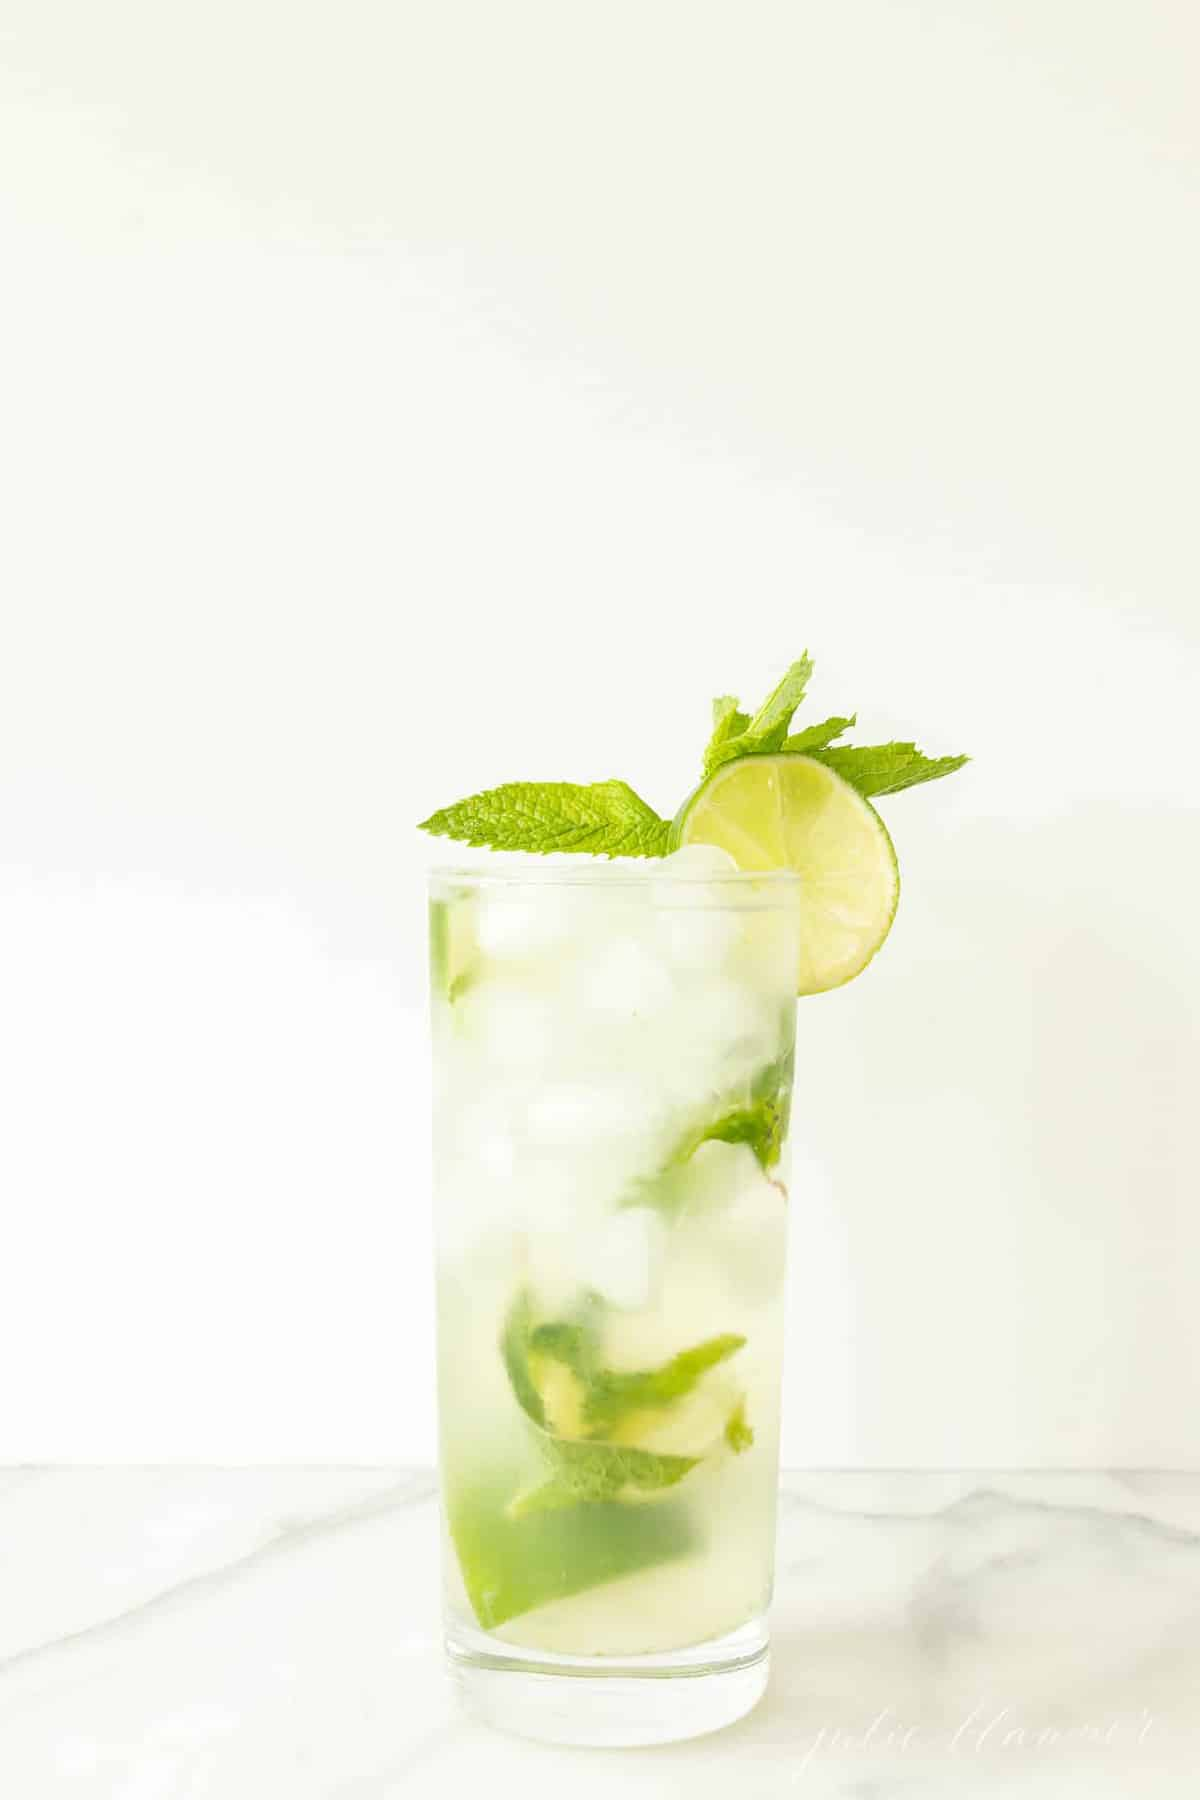 vodka mojito in a mojito glass garnished with lime slice and mint sprig